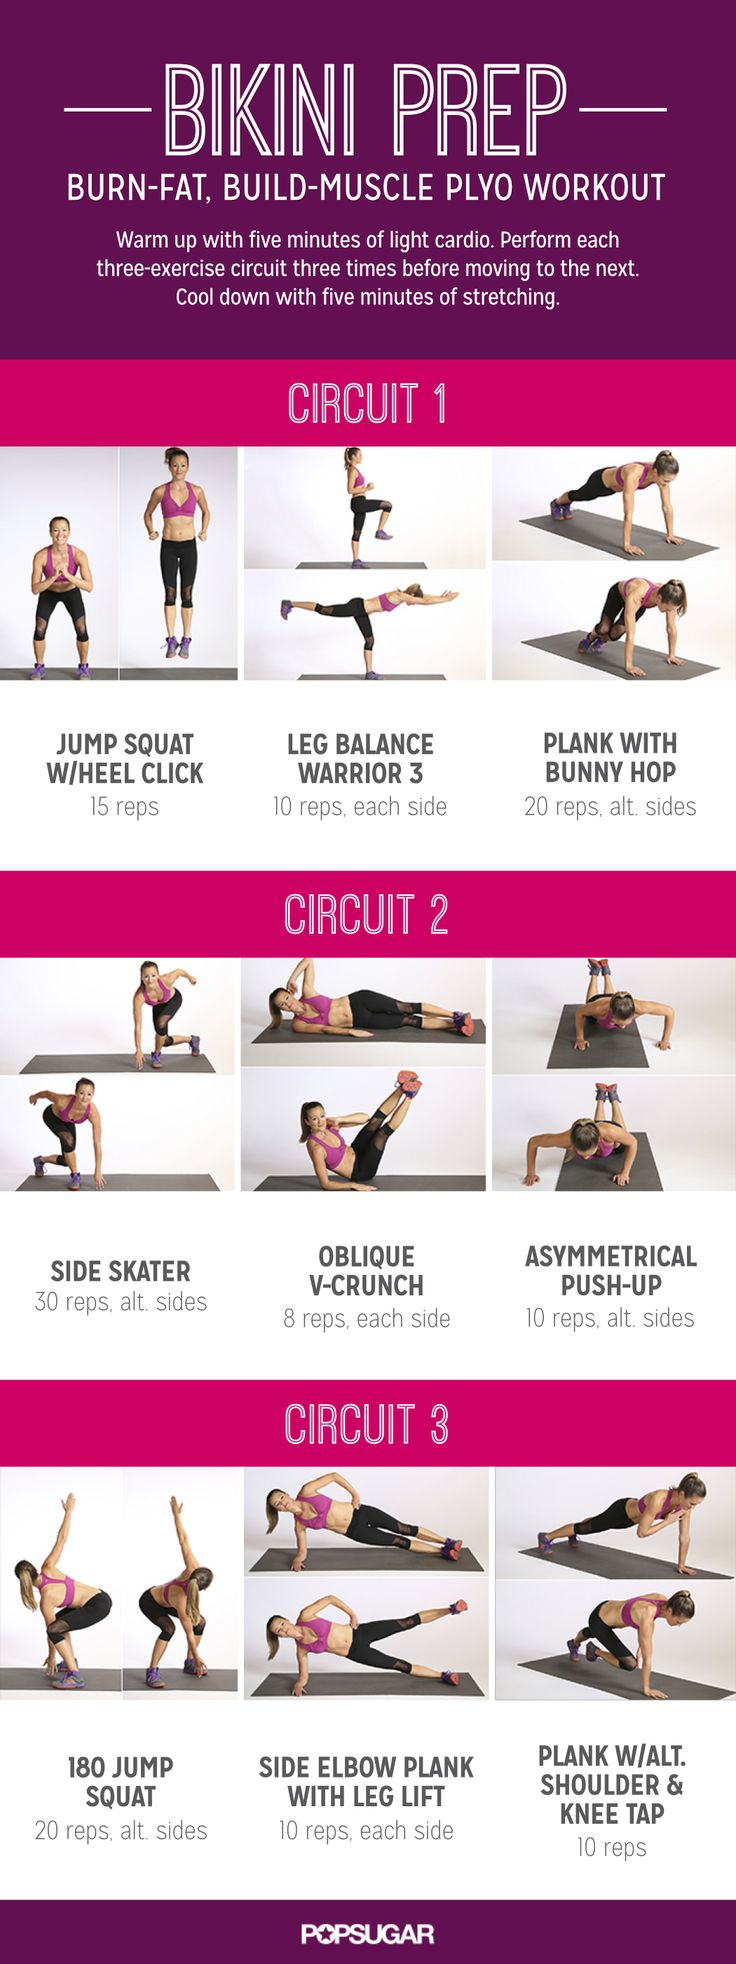 The Best Fat-Burning Exercises And Workouts